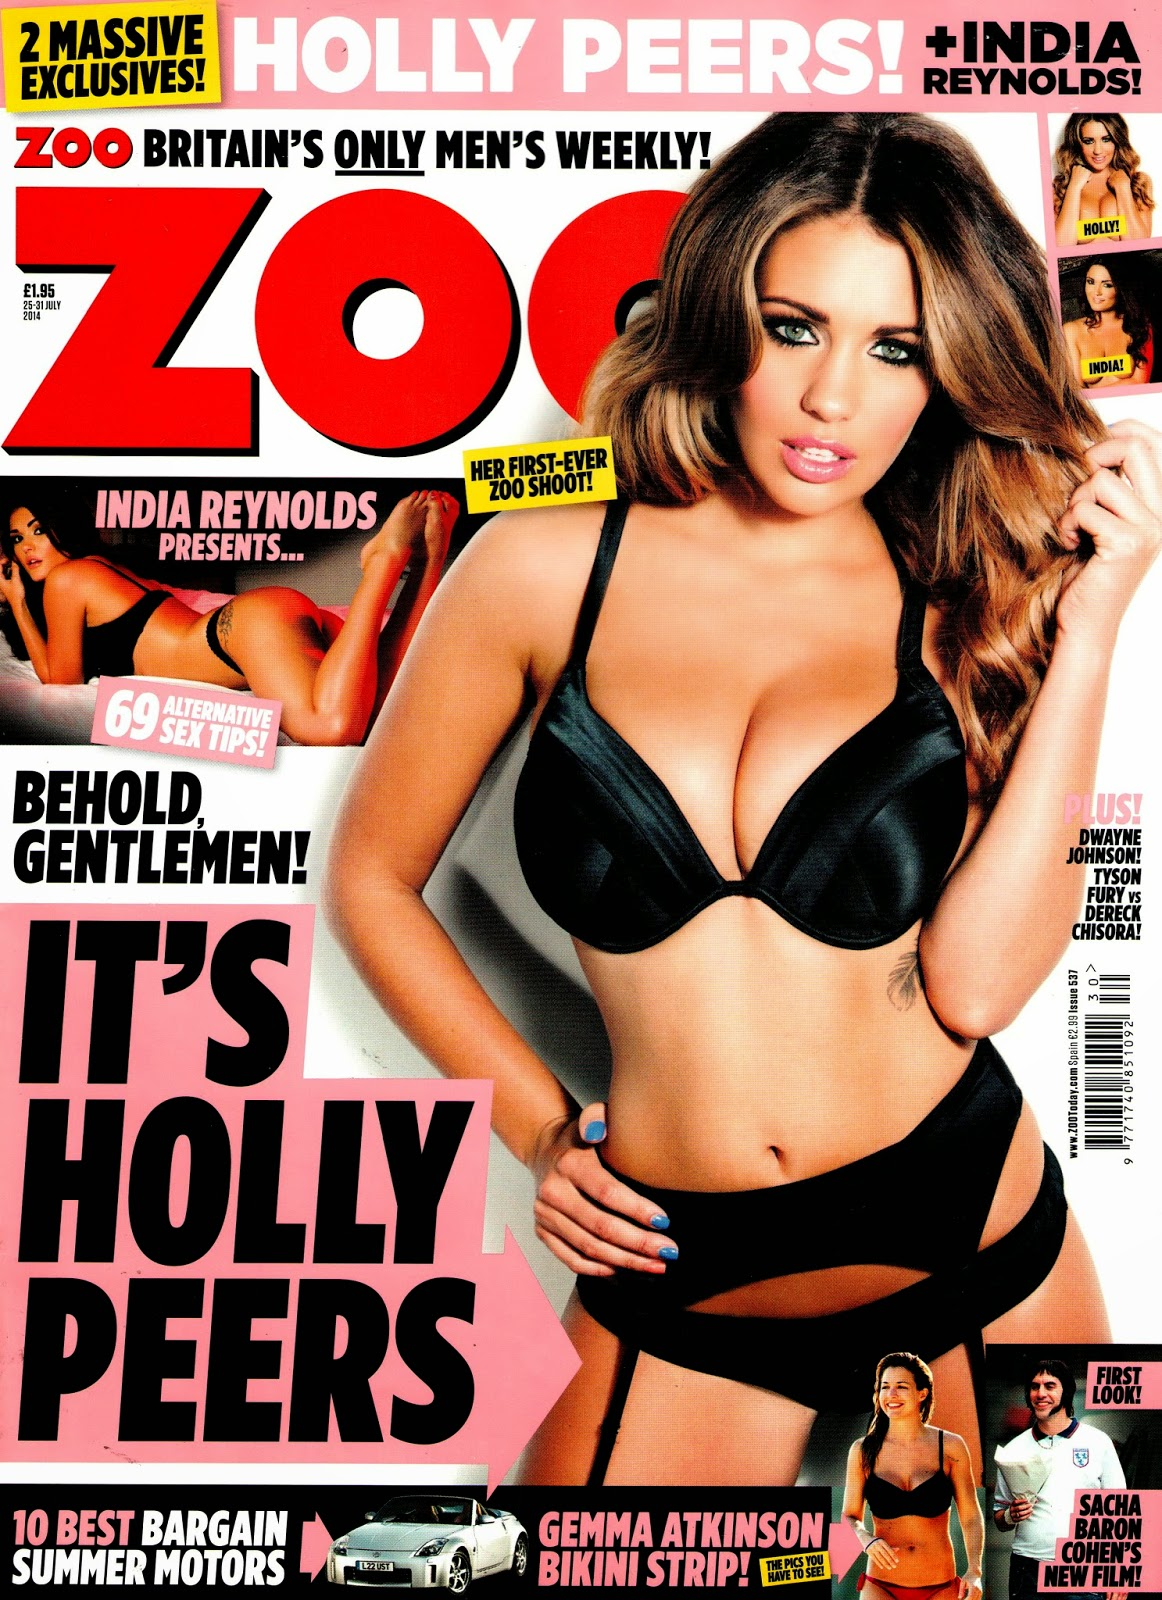 Holly Peers sexy lingerie cover girl in in Zoo magazine